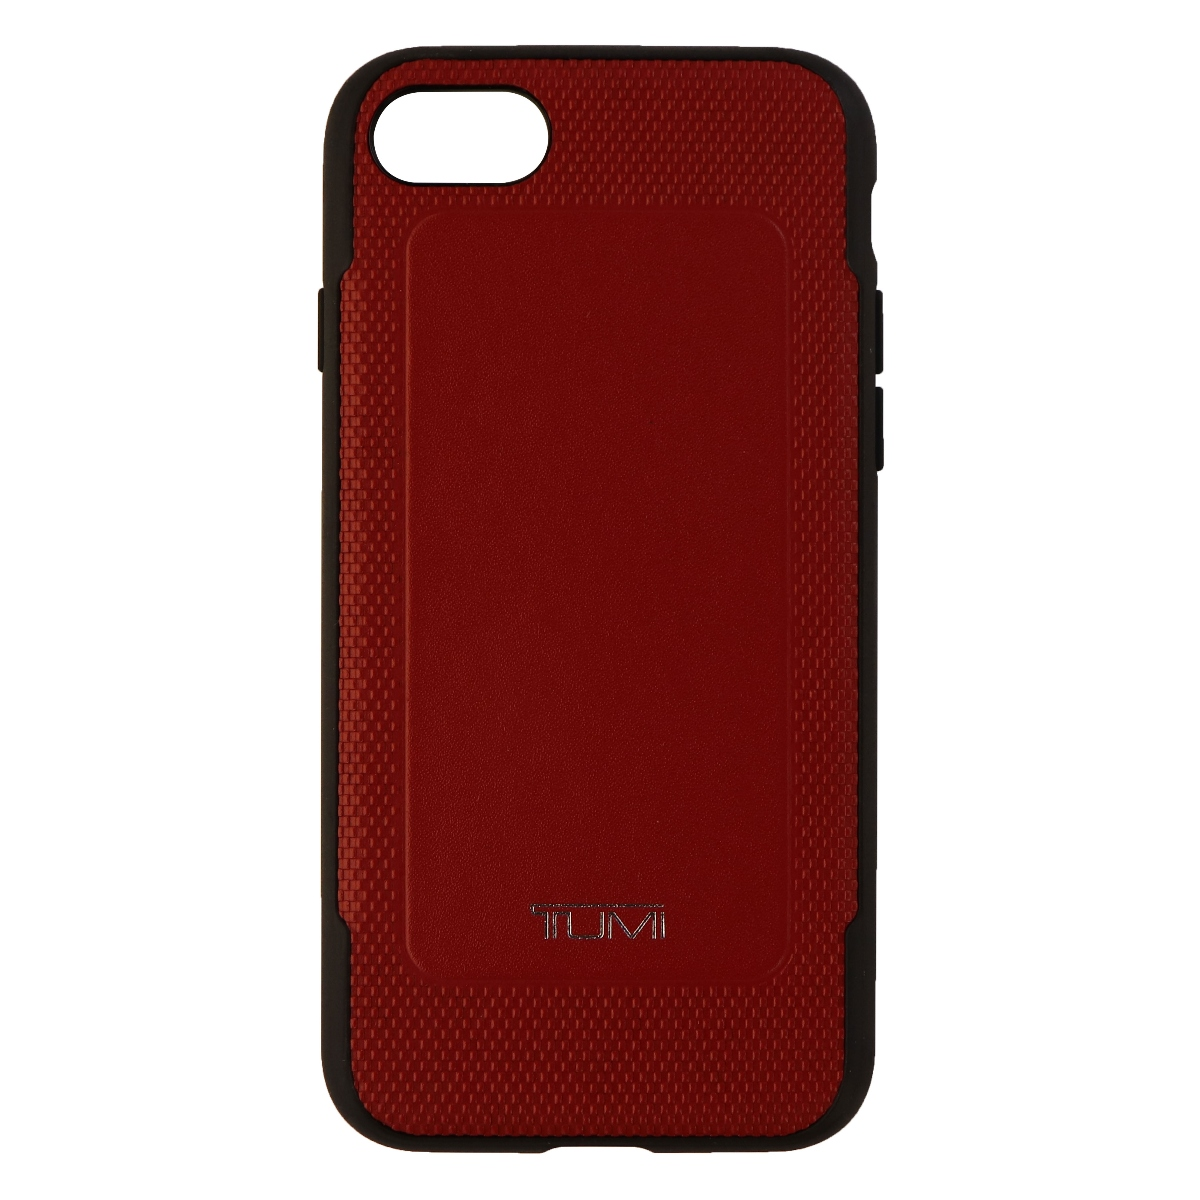 TUMI Leather Co-Mold Case for iPhone 7 - Red Leather